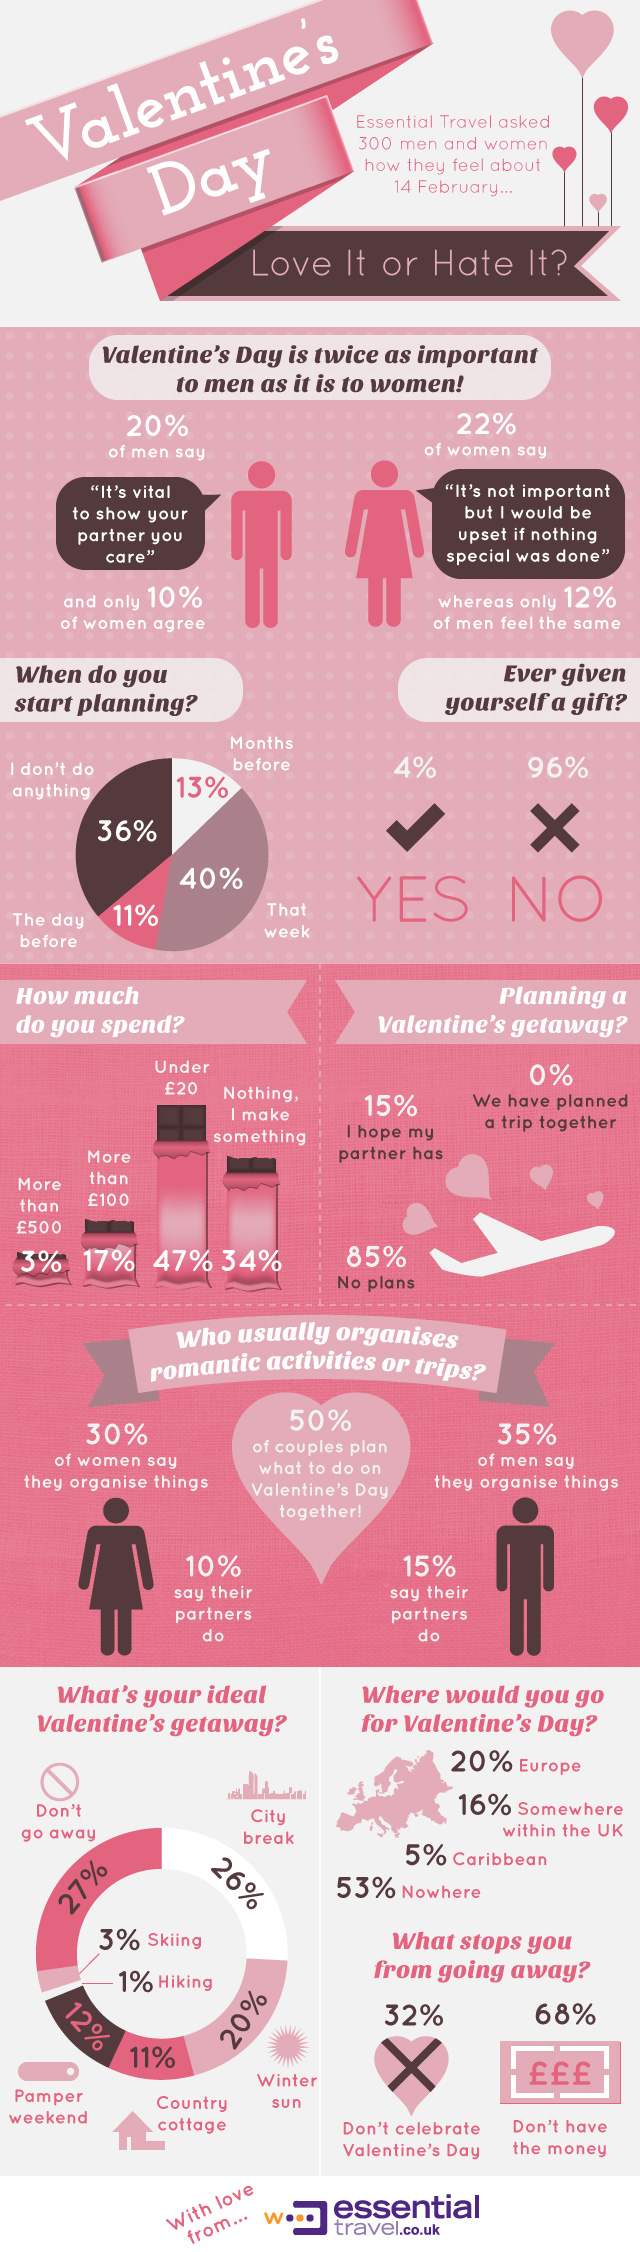 Valentine's Day - Love it or hate it?